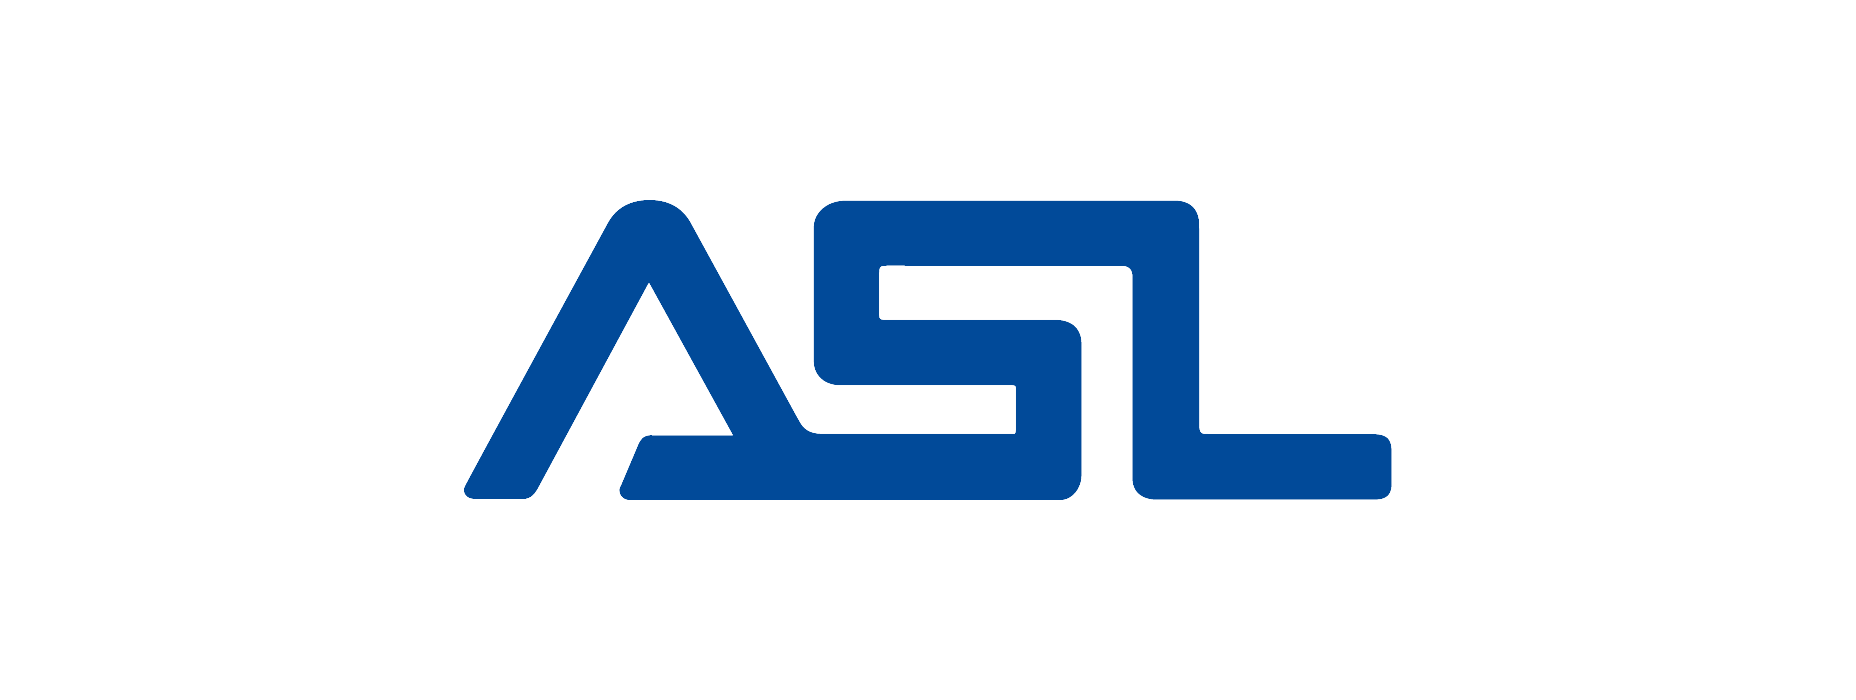 ASL Global awards contract to Claritum